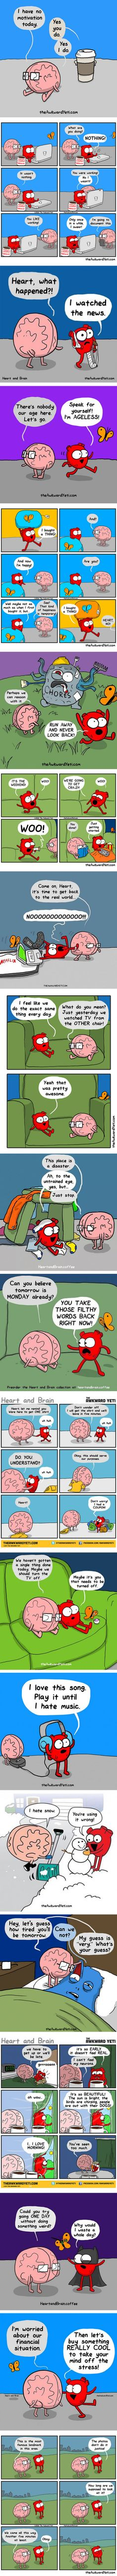 20 Comic Strips About the Eternal Struggle Between the Heart and Brain Cute Comics, Funny Comics, Funny Cartoons, Funny Memes, Funny Sarcasm, Funny Cute, The Funny, Hilarious, Heart And Brain Comic